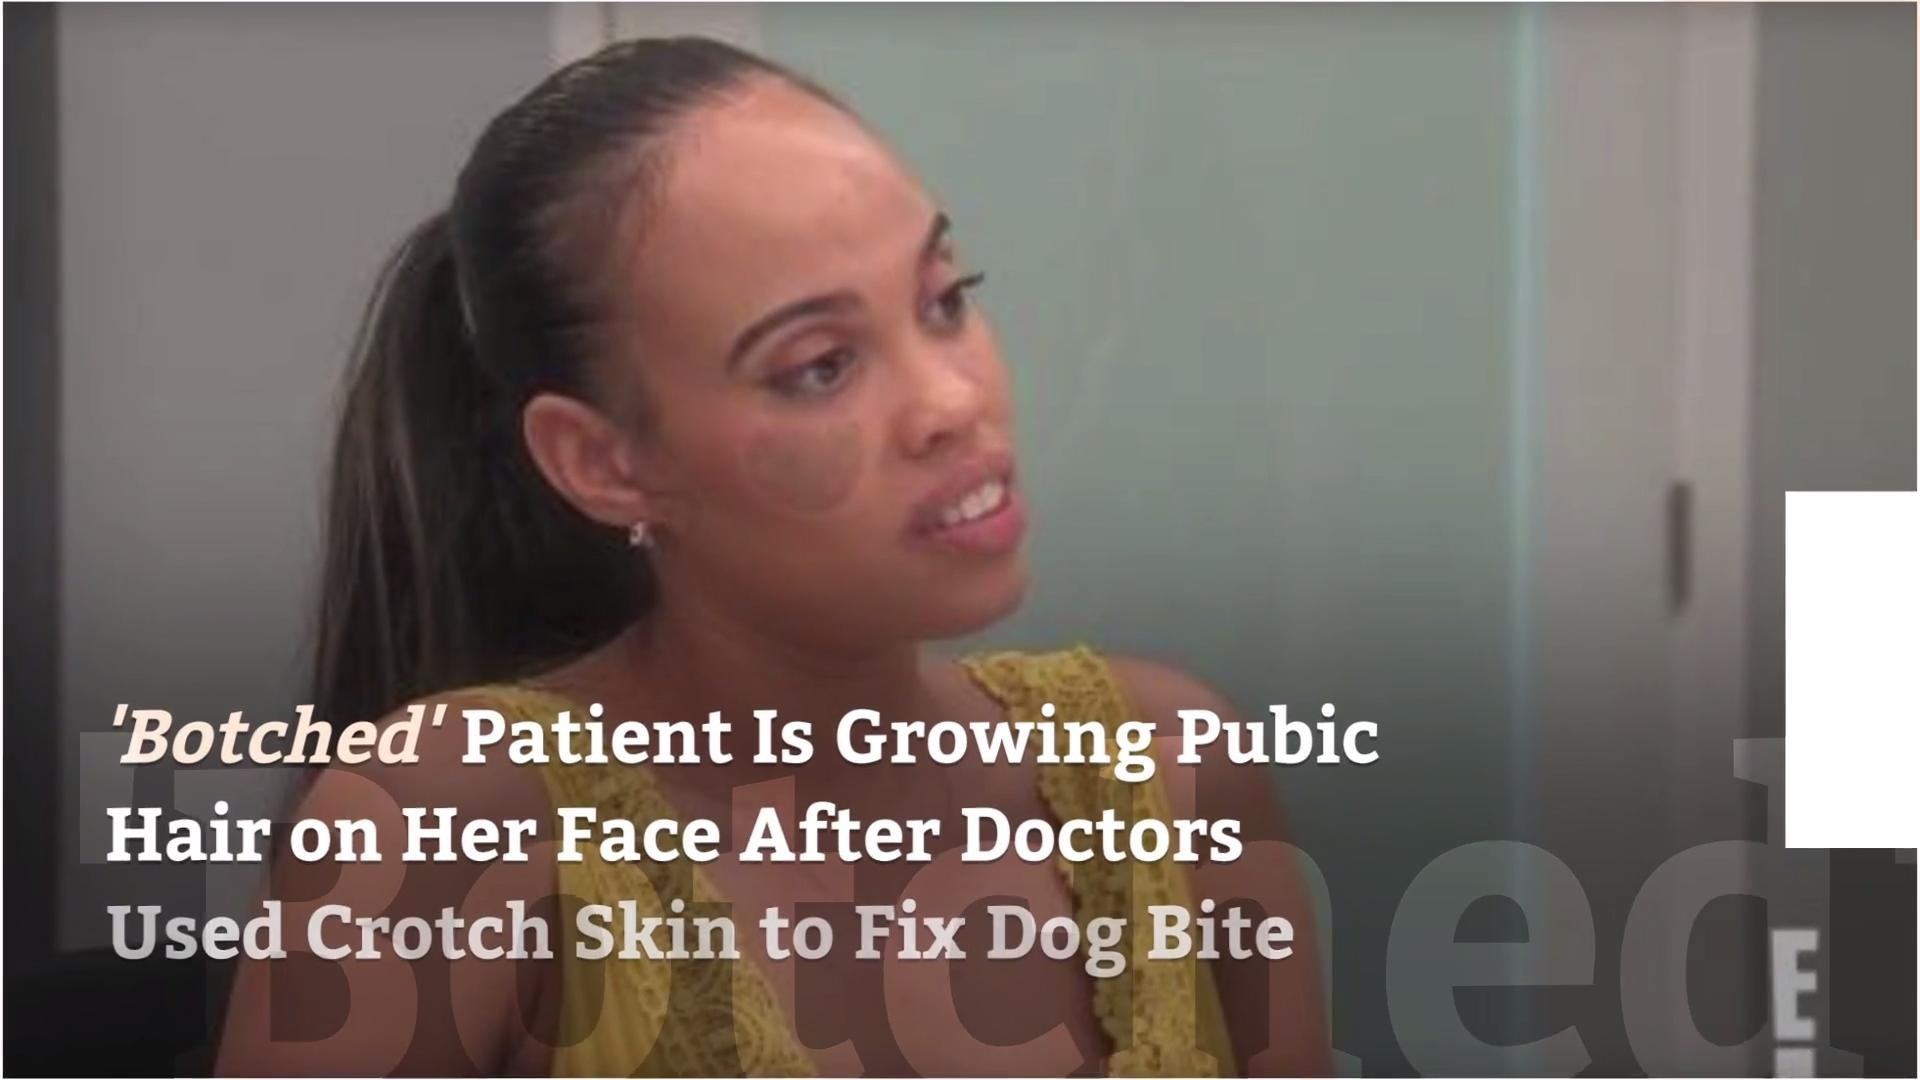 'Botched' Patient Is Growing Pubic Hair on Her Face After Doctors Used Crotch Skin to Fix Dog Bite